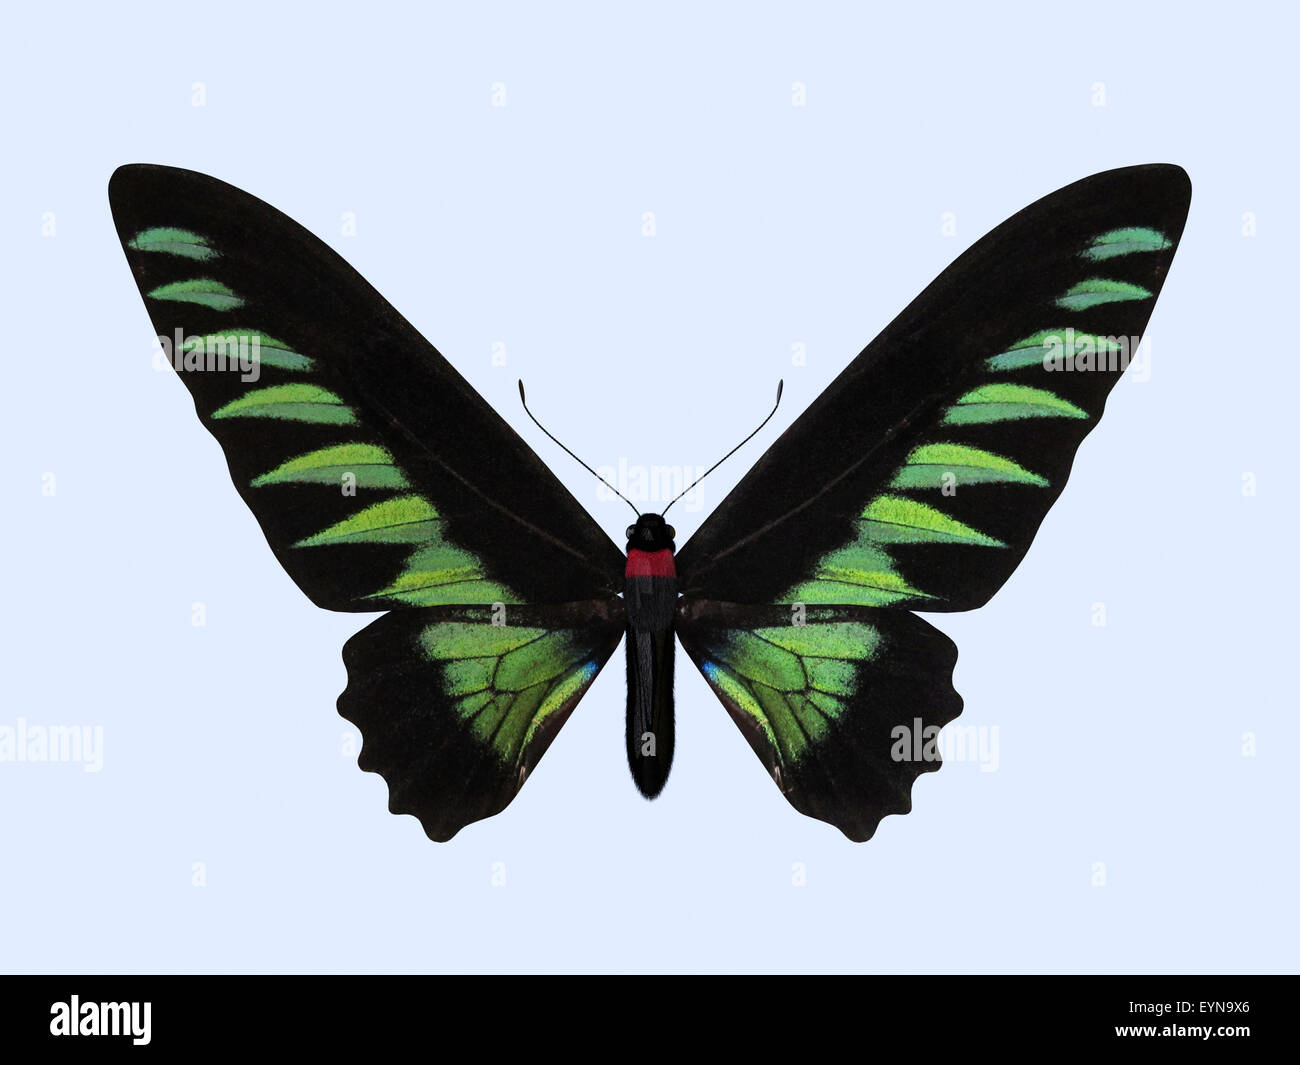 Rajah Brooke's Birdwing. The Three-dimensional Birdwing Butterfly, scientifically known as Trogonoptera Brookiana. - Stock Image